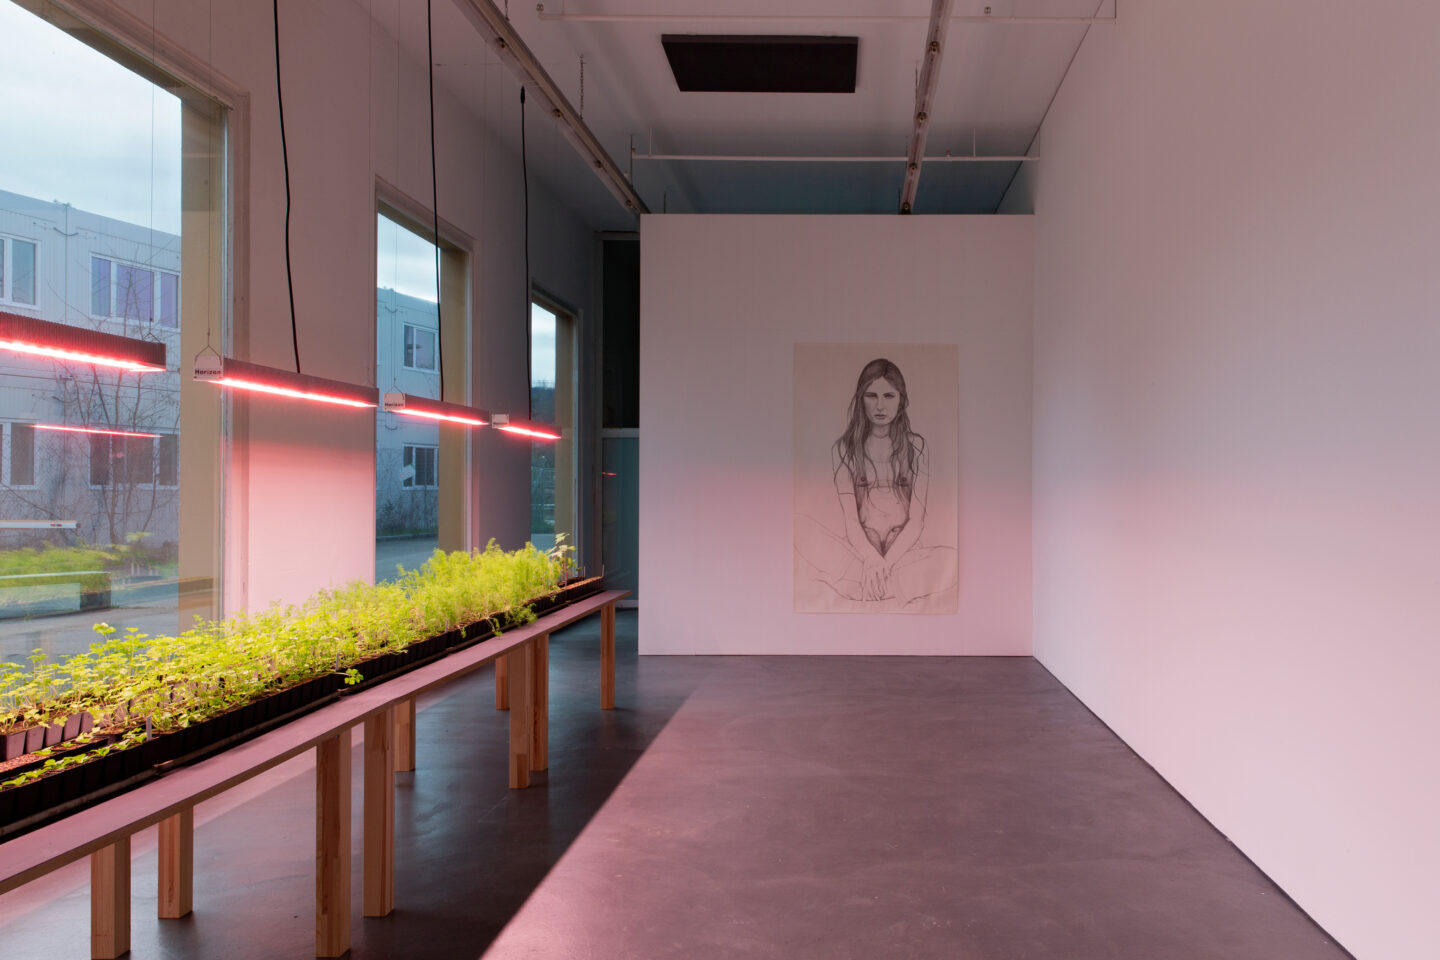 Exhibition View Marlene McCarty Soloshow «Into the Weeds; view on Marlene Olive – June 21, 1976, 1995-1997» at Kunsthaus Baselland, Muttenz, 2020 / Photo: Gina Folly / Courtesy: the artist